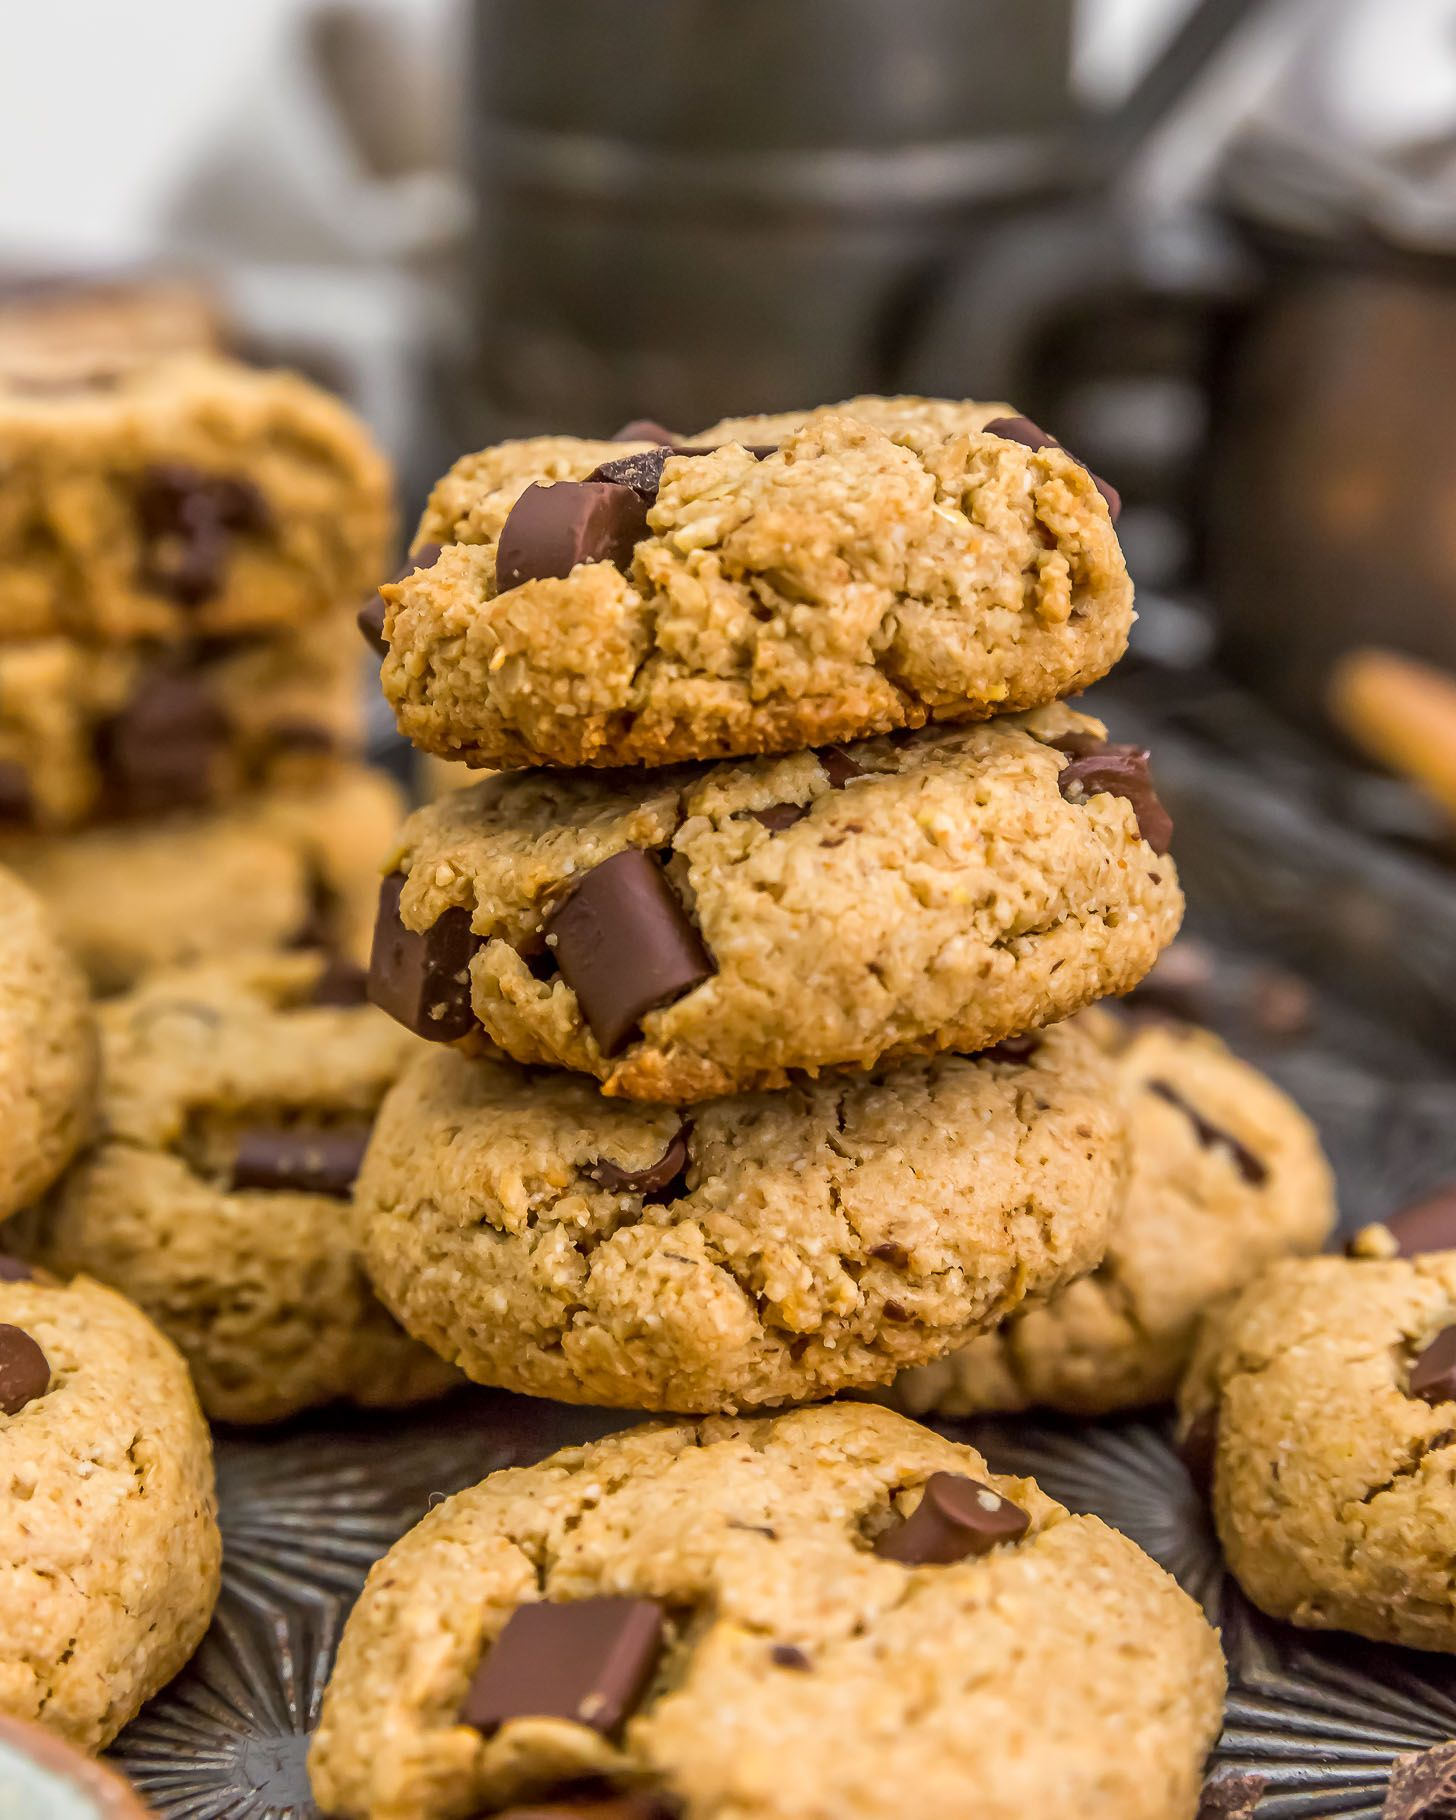 Vegan Peanut Butter Chocolate Chip Cookies Monkey And Me Kitchen Adventures Recipe In 2020 Peanut Butter Chocolate Chip Peanut Butter Chocolate Chip Cookies Chocolate Chip Cookies